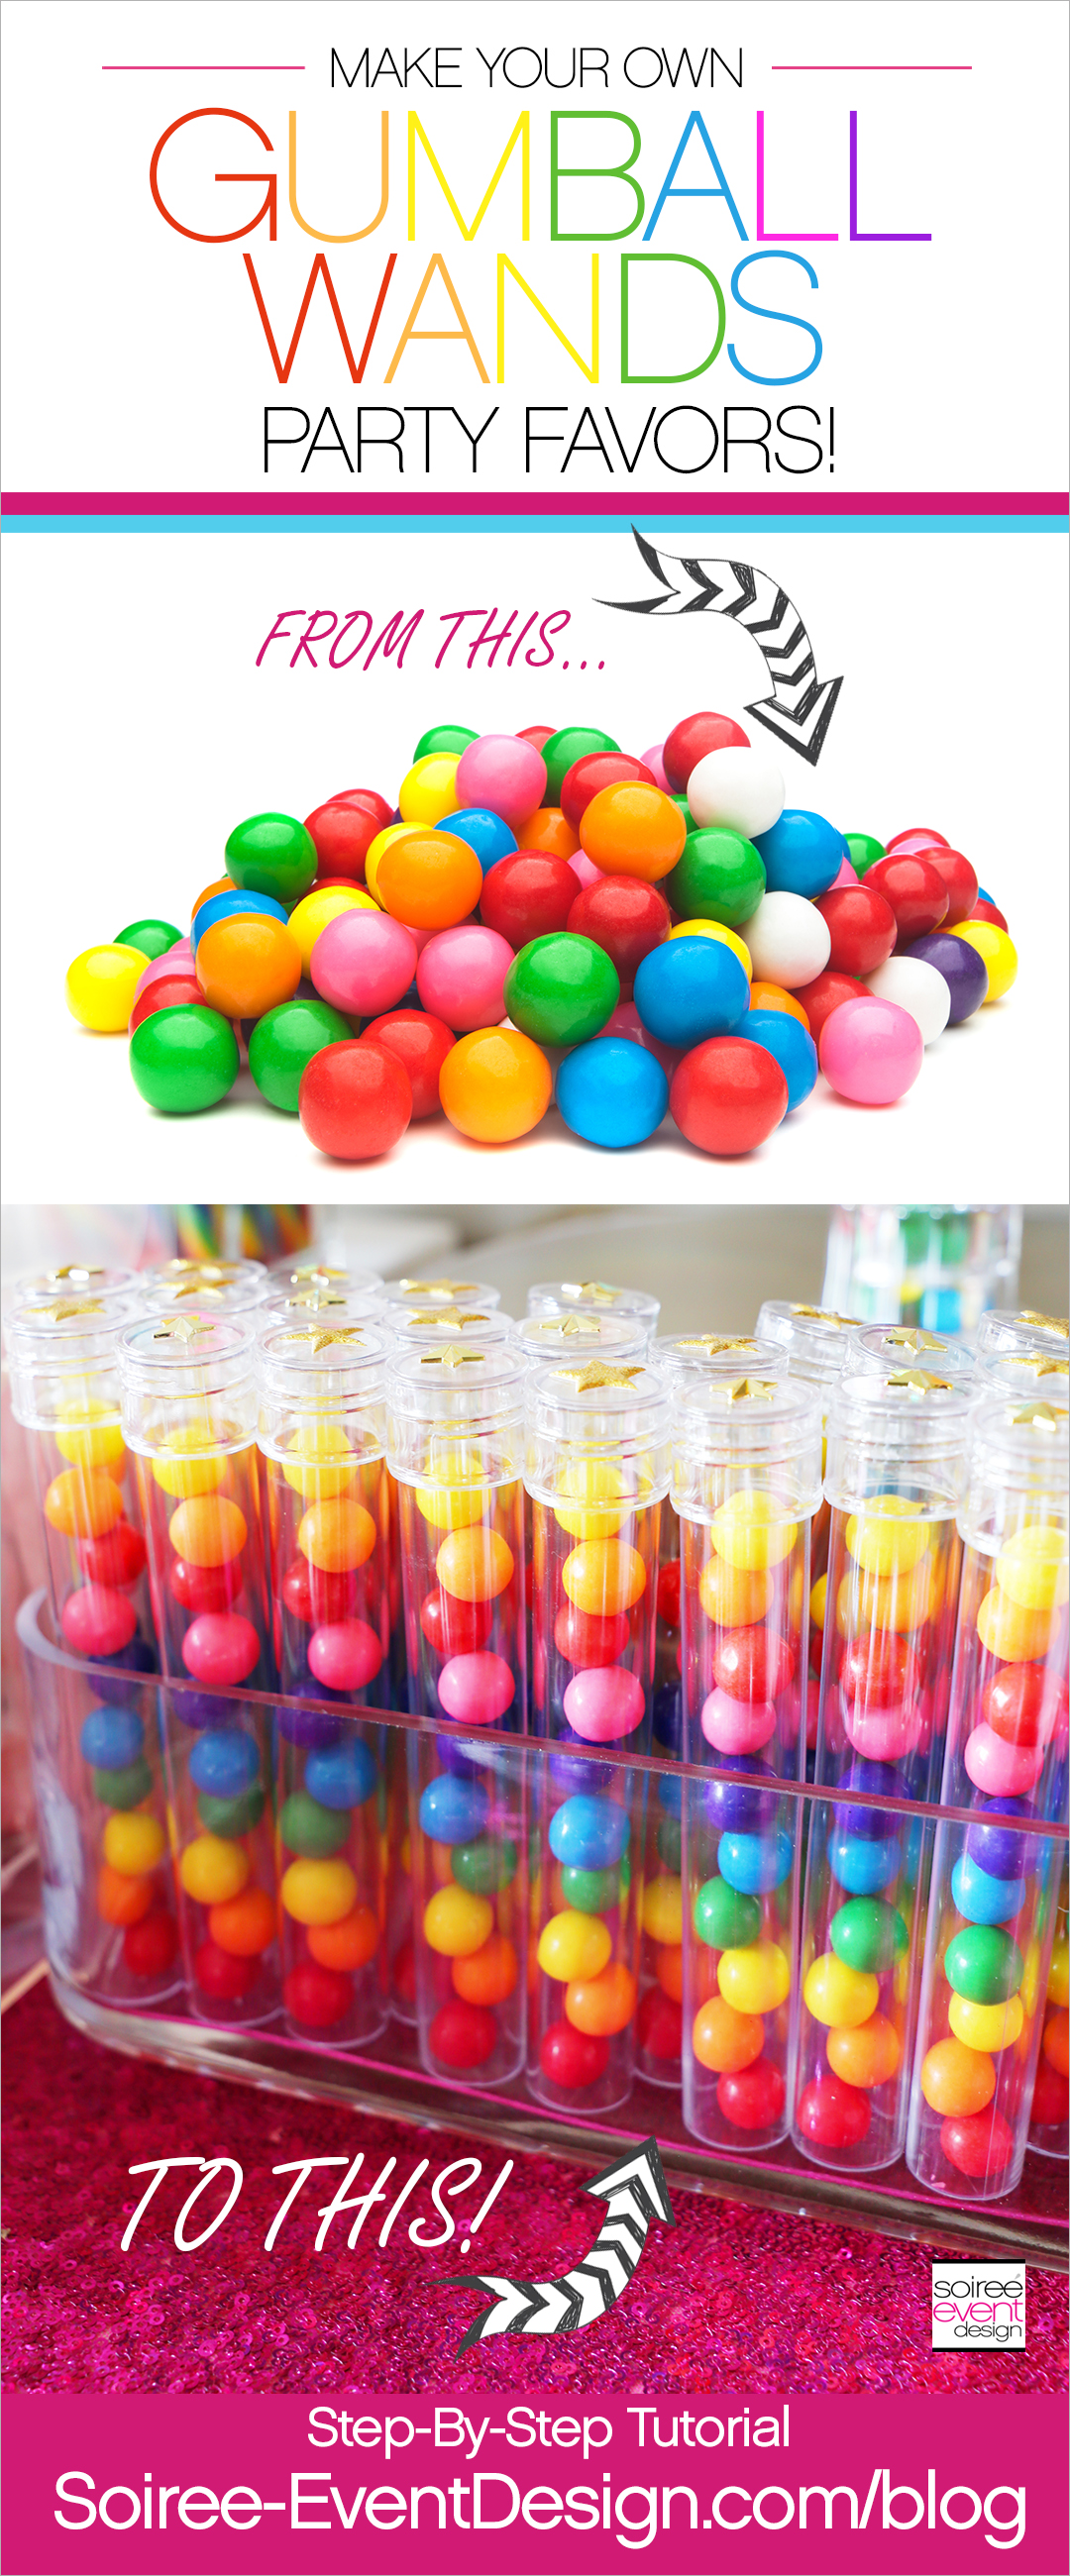 Rainbow Gumball Wands Party Favors Tutorial